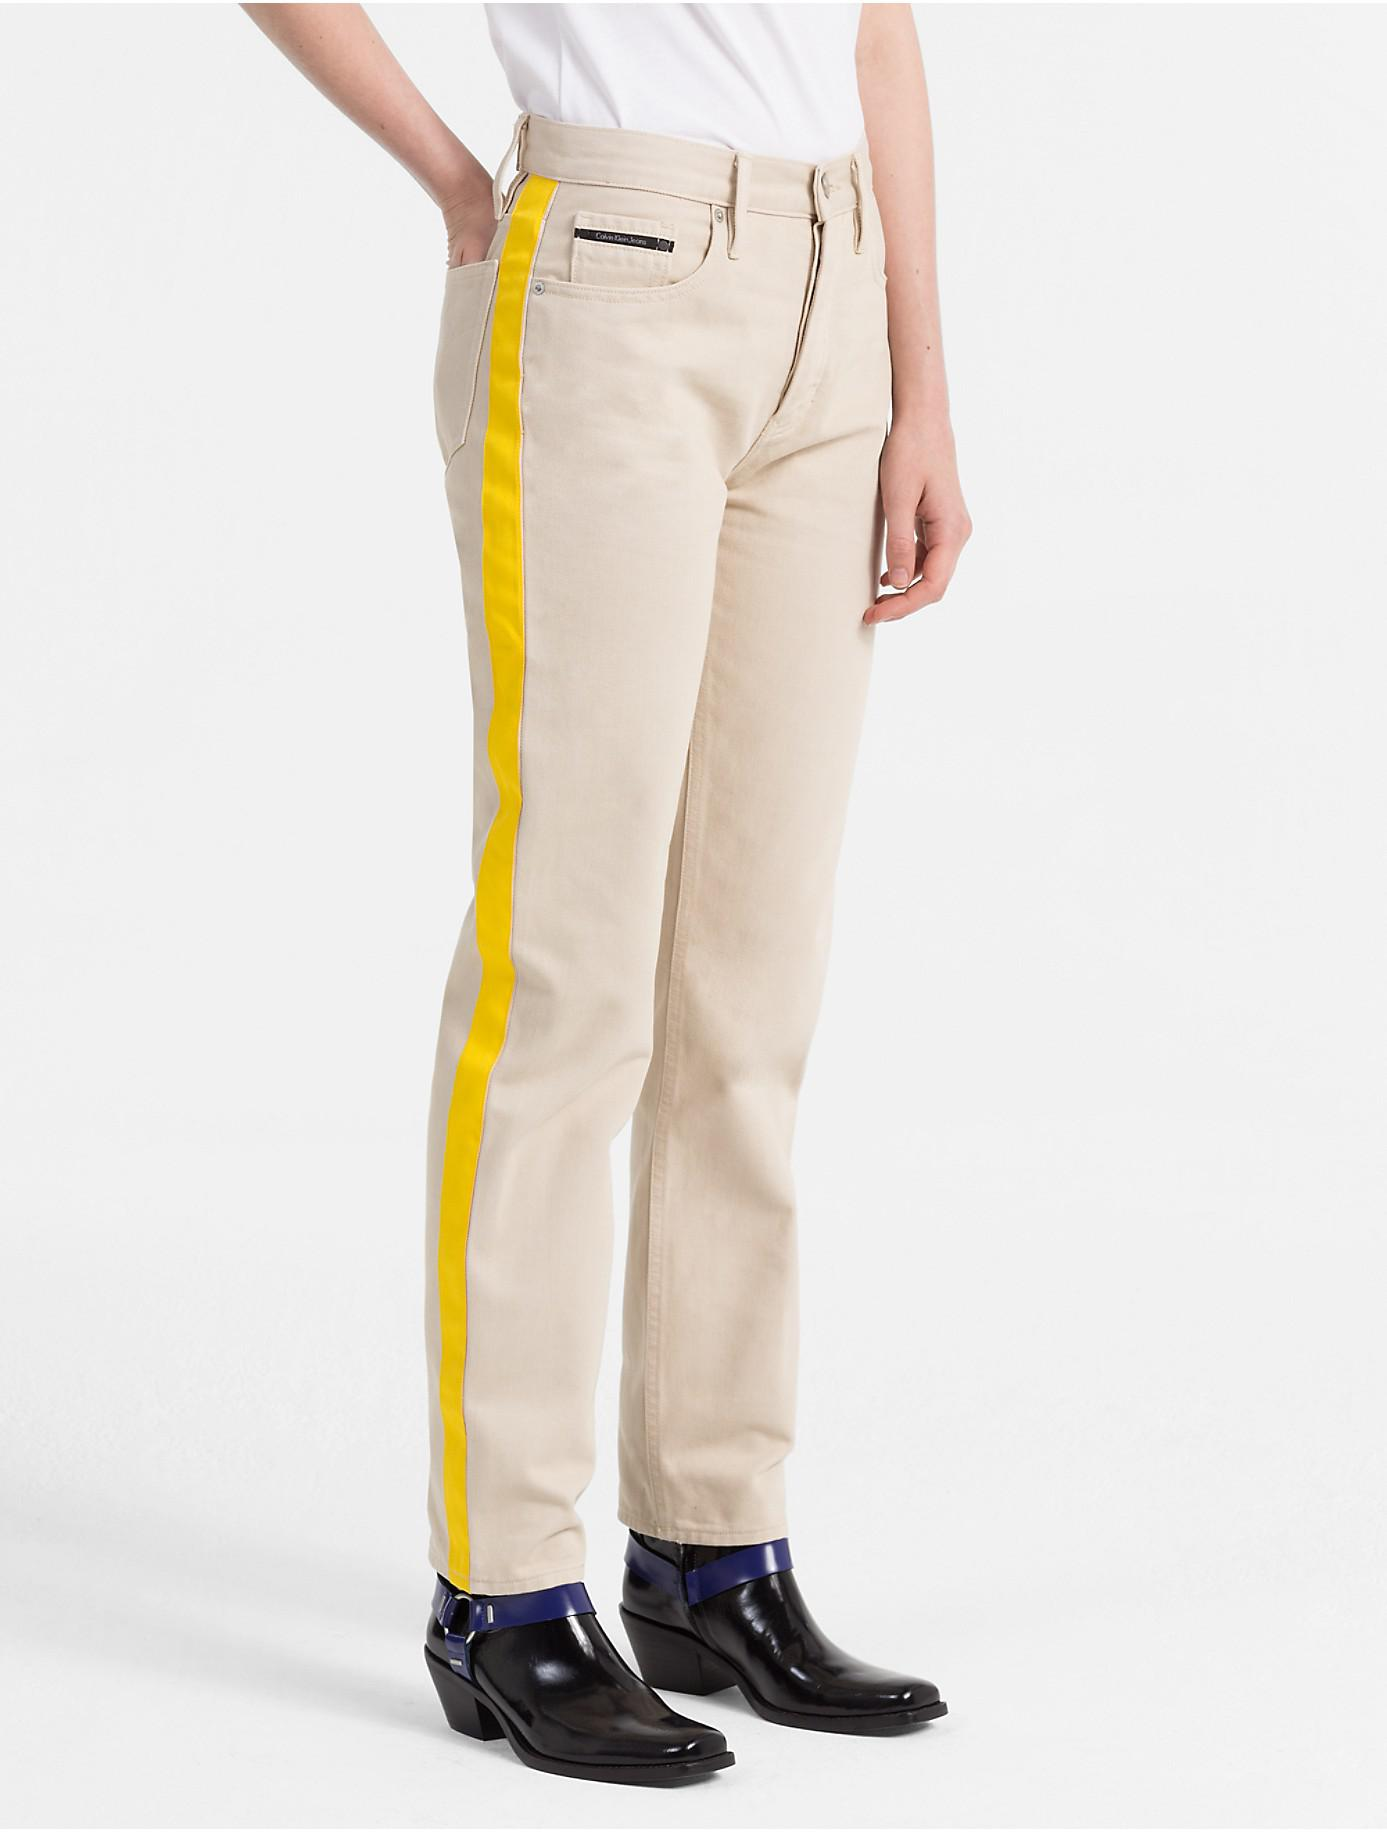 CALVIN KLEIN 205W39NYC. Women's Straight Tapered High Rise Striped Jeans